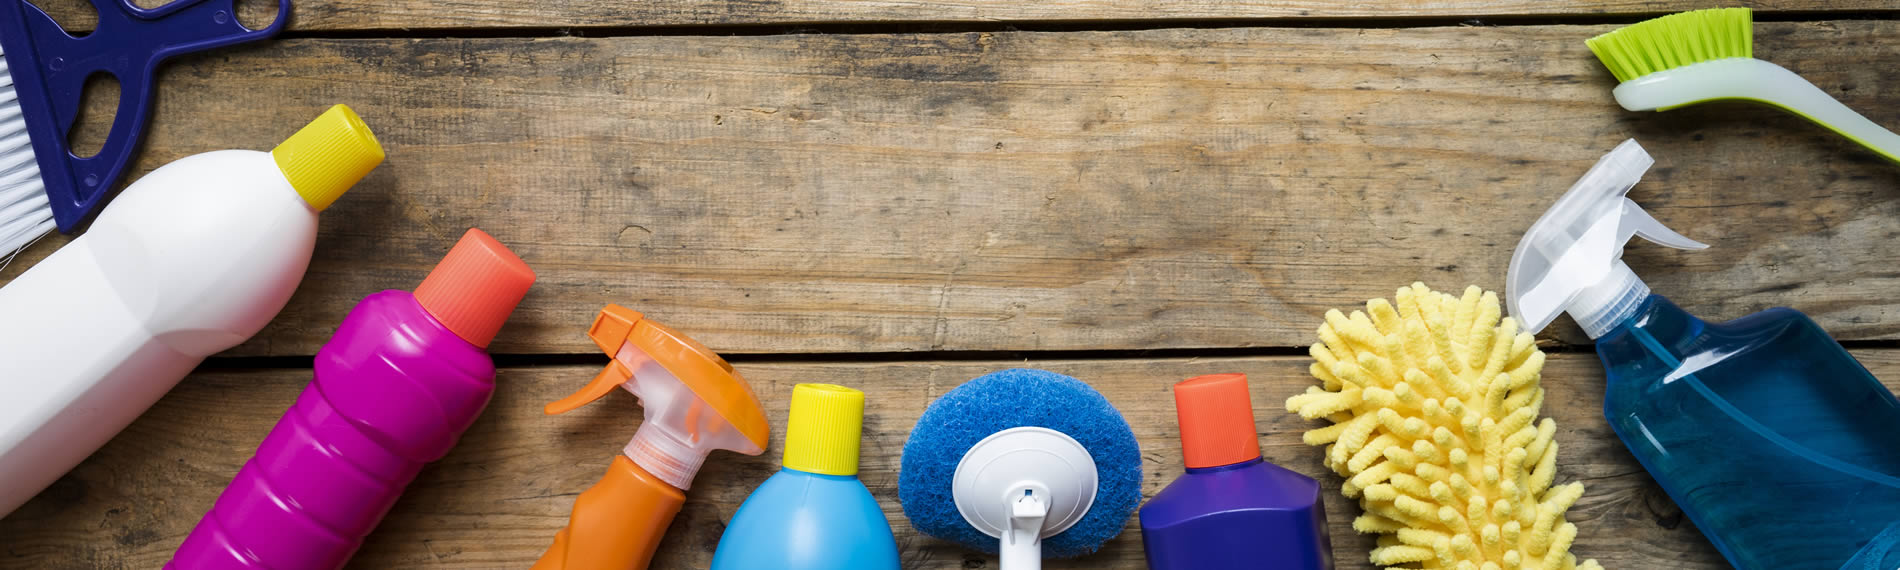 Cleaning materials for end-of-tenancy clean